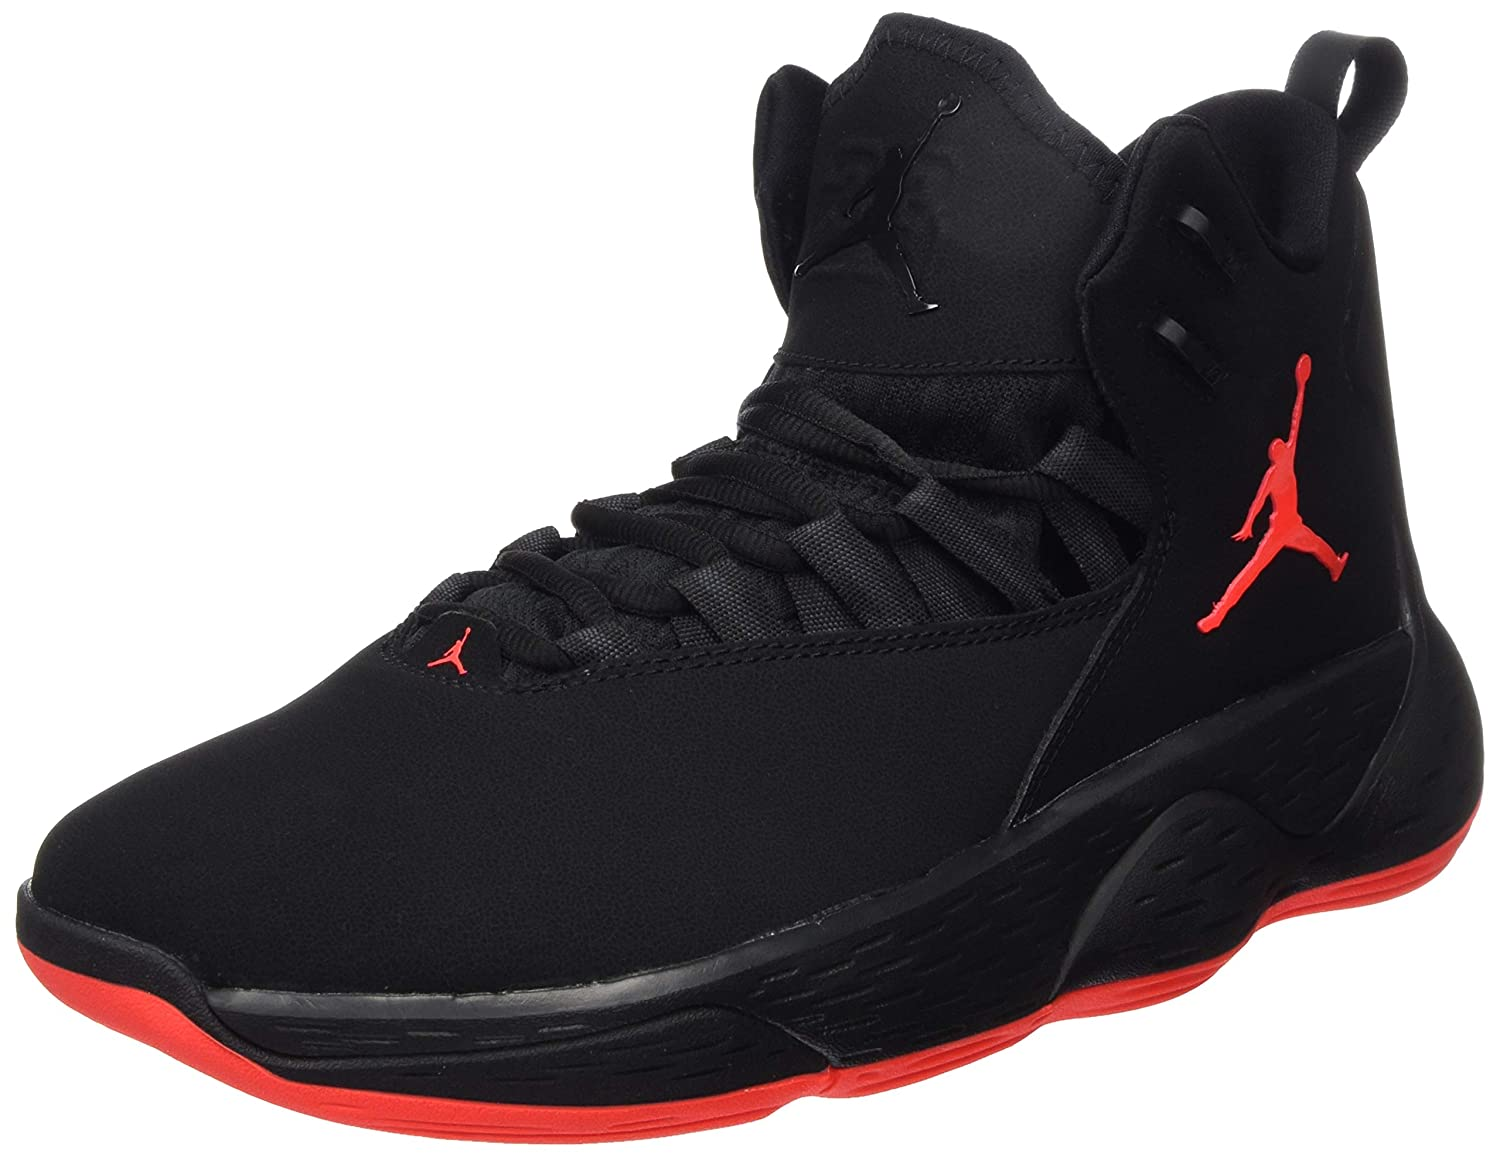 c51b5940f9e0 Nike Men s s Jordan Super.Fly MVP Basketball Shoes  Amazon.co.uk  Shoes    Bags